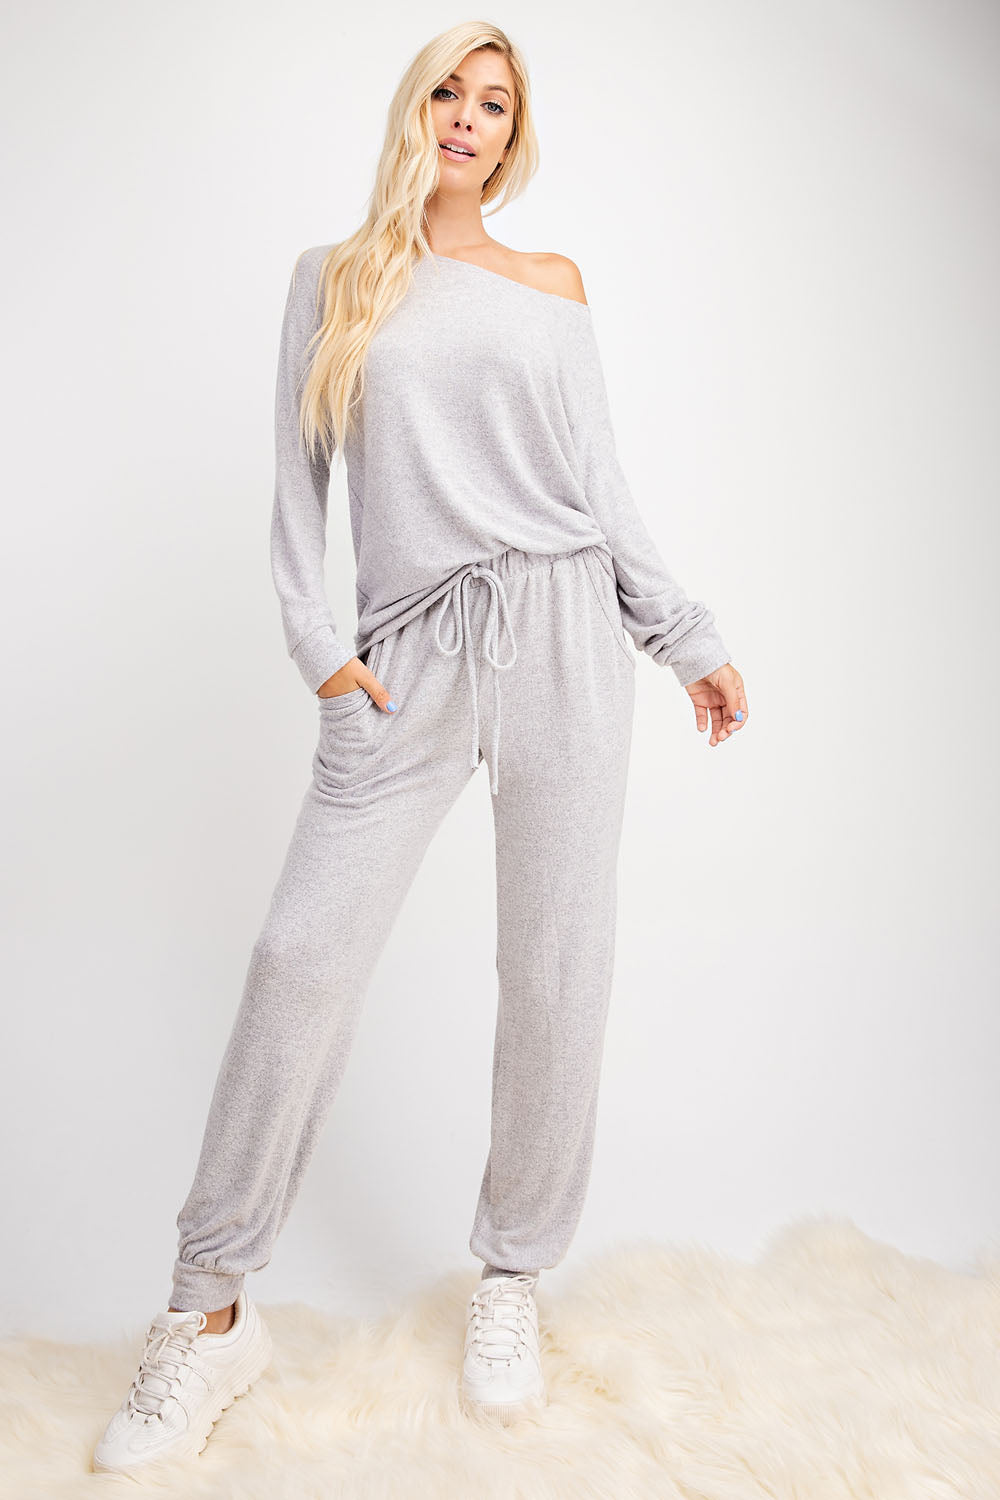 Soft Brushed Knit Jogger Pant - besties STUDIOS